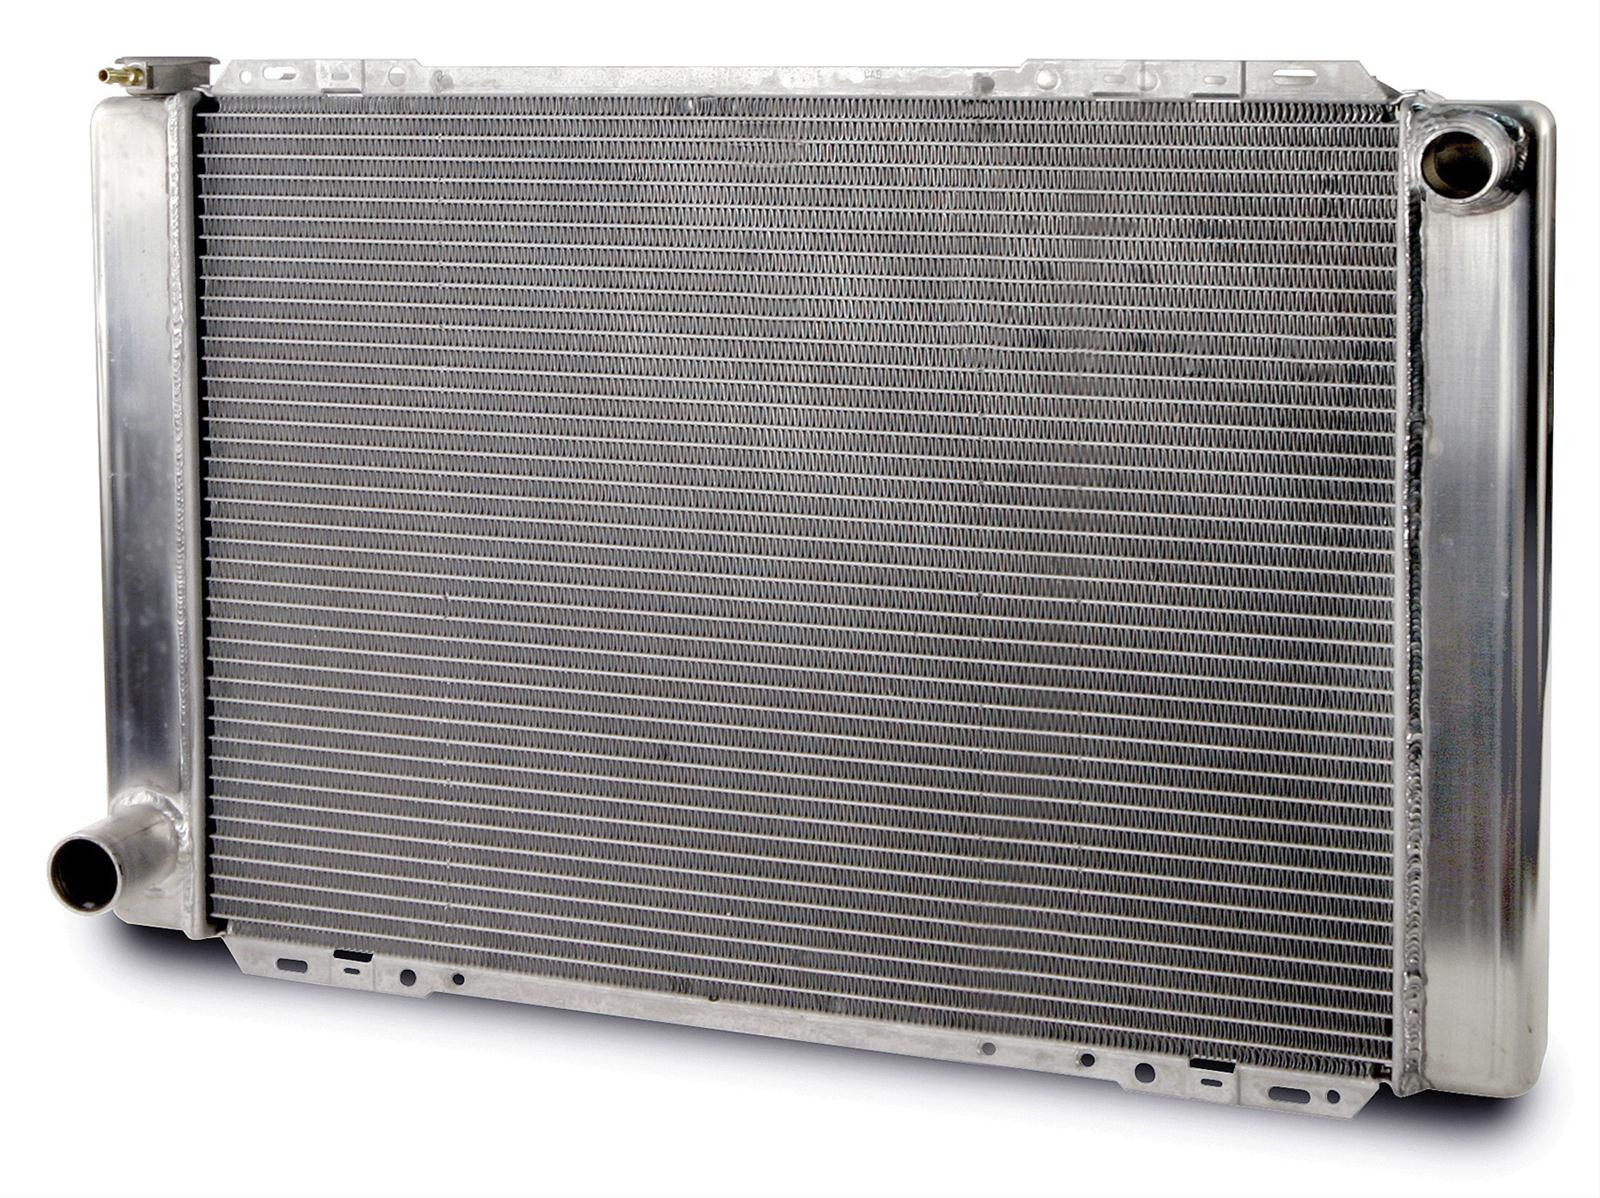 AFCO Racing Bolt-In Direct Fit Aluminum Radiators 80109FN - Free Shipping  on Orders Over $49 at Summit Racing